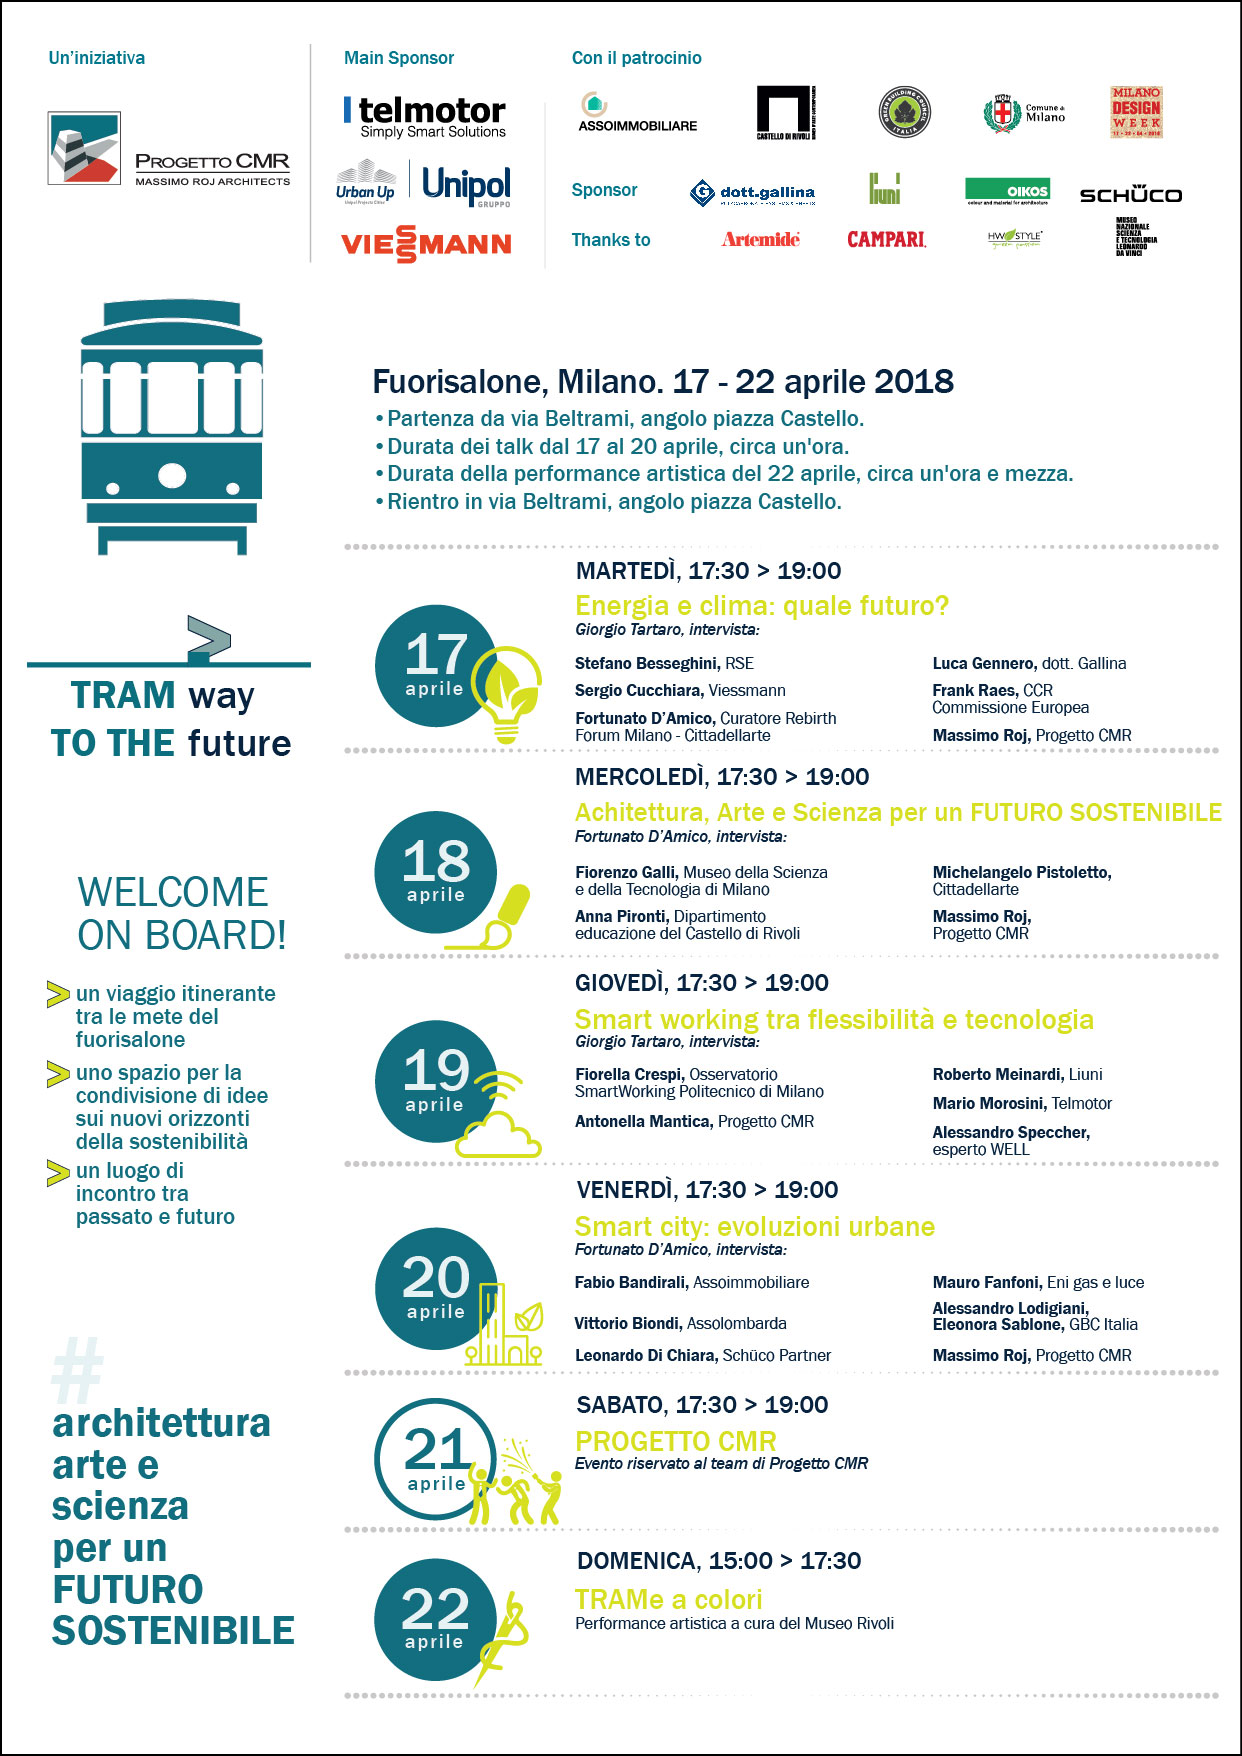 Programma tram way to the future